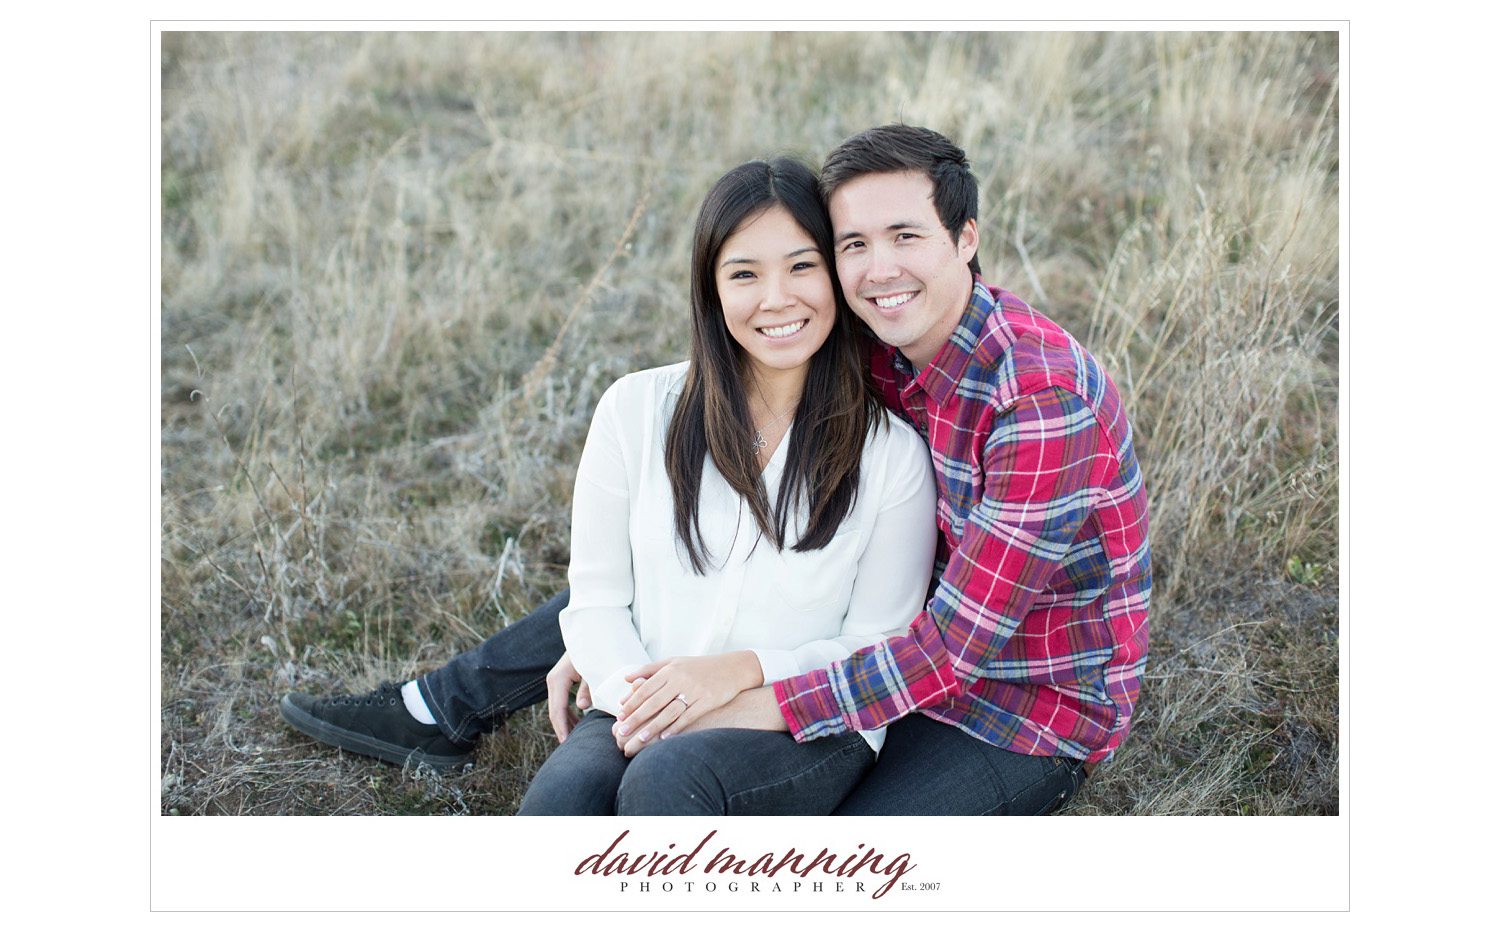 Del-Mar-Ramona-Julian-Engagement-Photos-David-Manning-Photographers-0017.jpg